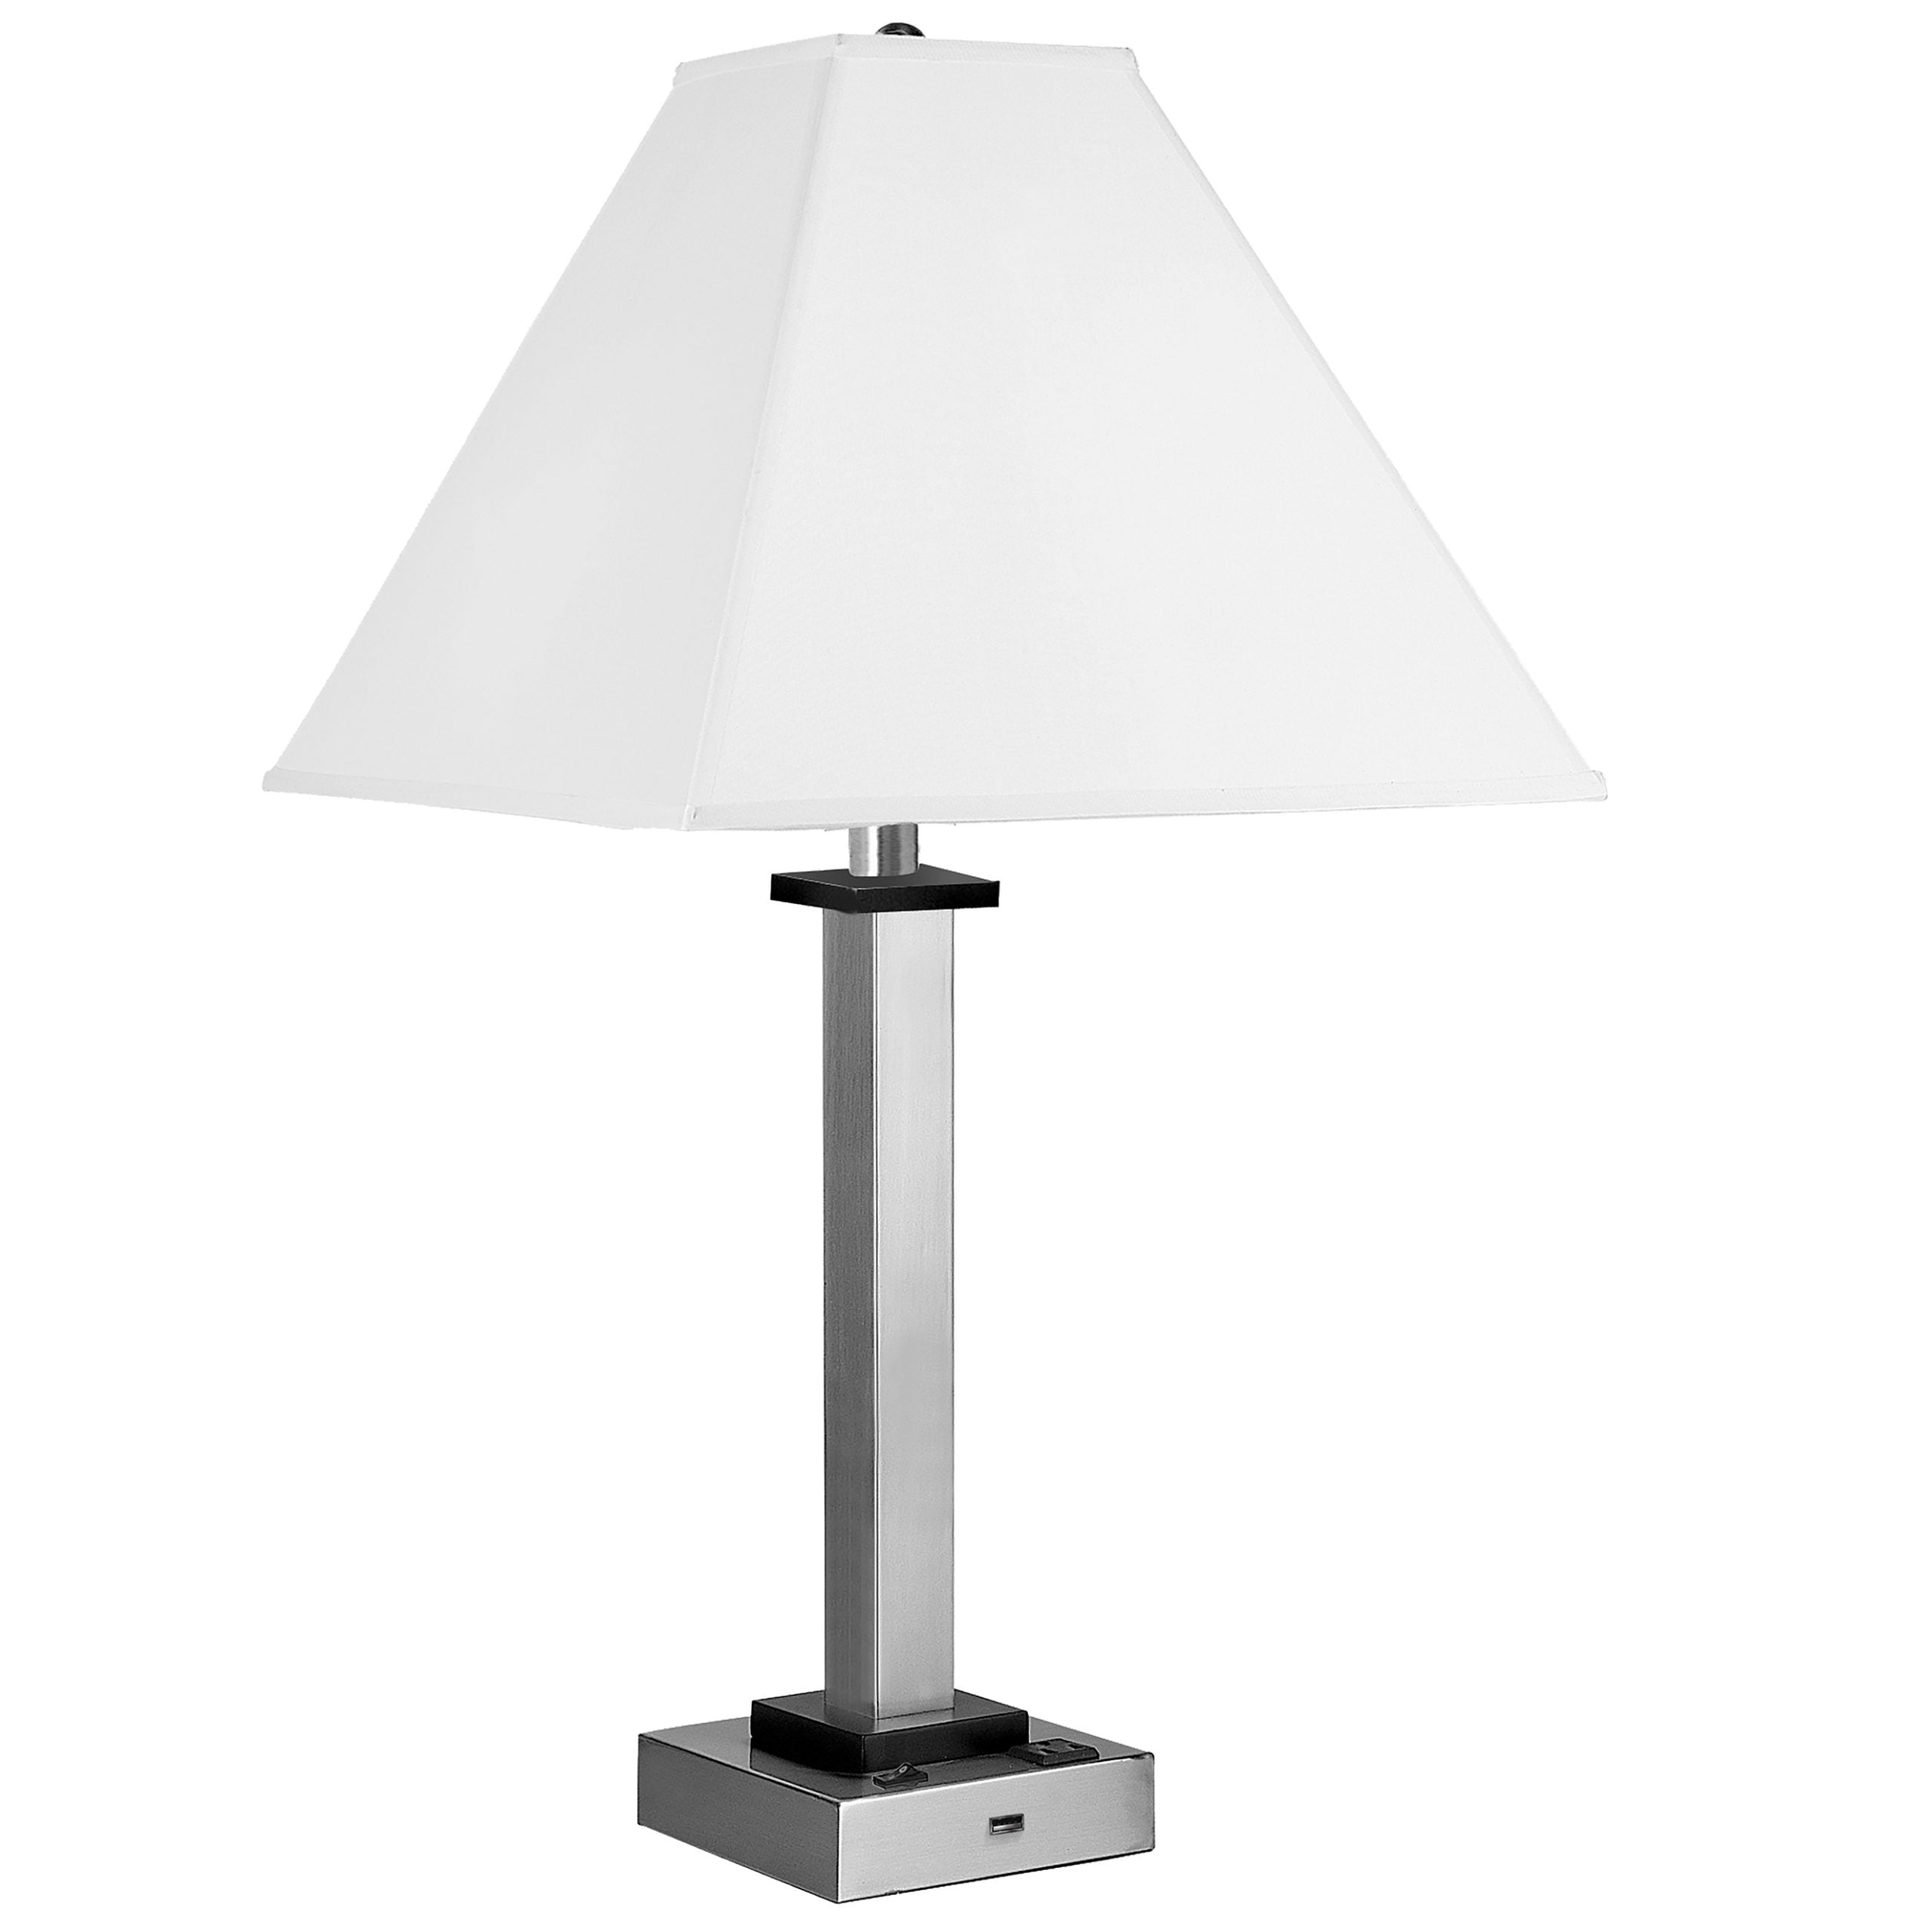 Andaaz Single Table Lamp with 1 Outlet & 1 USB